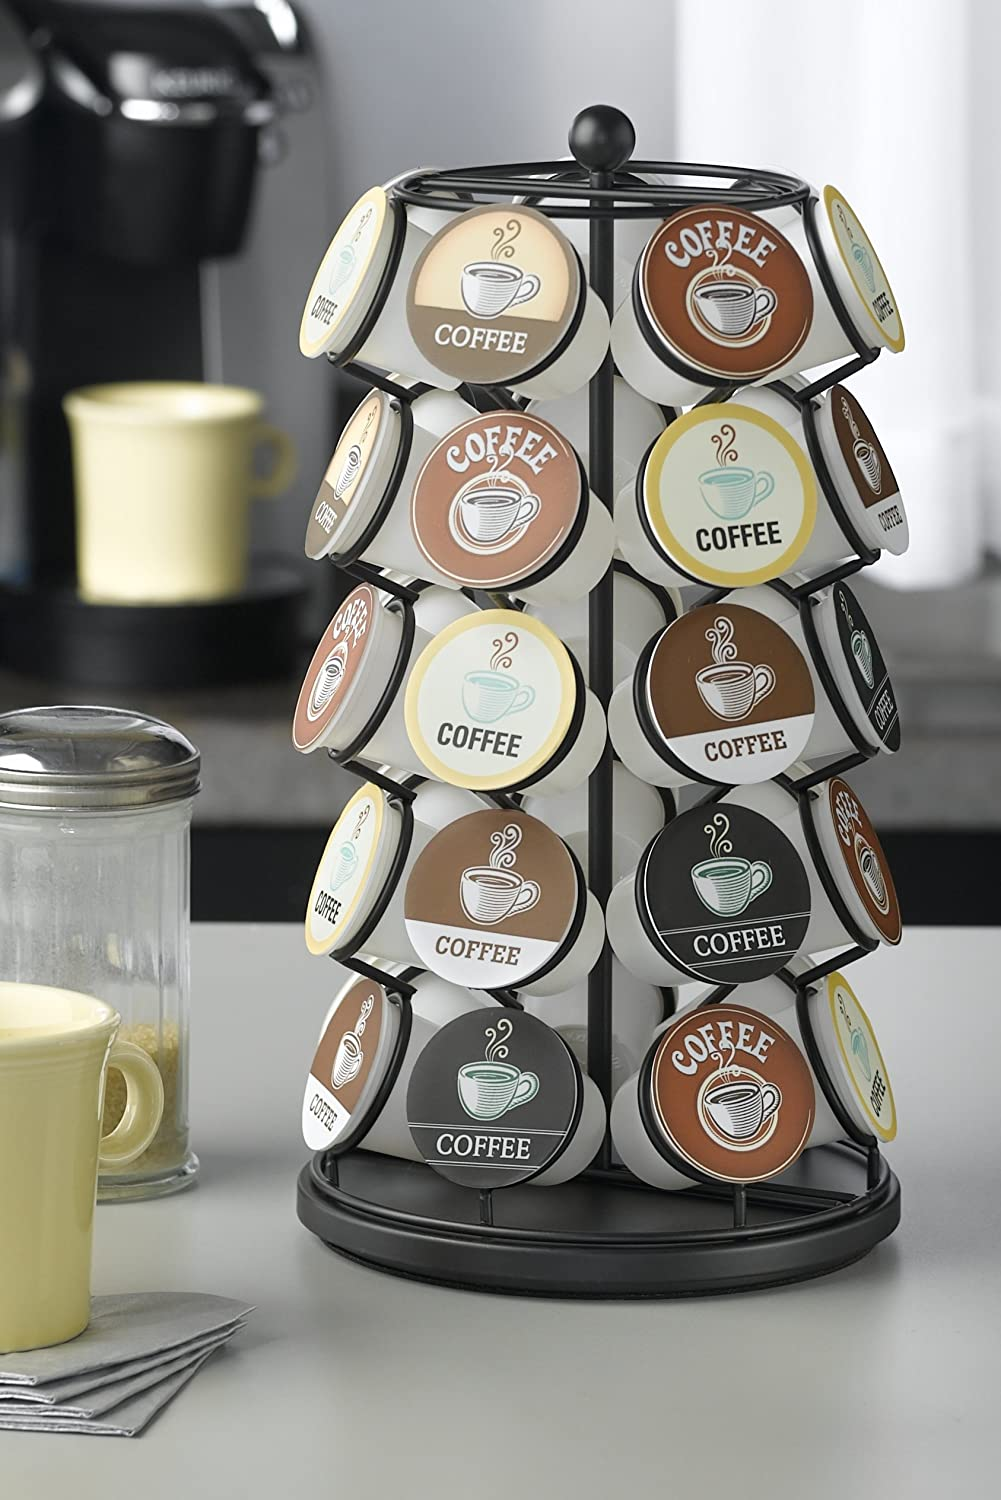 Check Amazon's price for this best-selling Coffee Pod Caddy